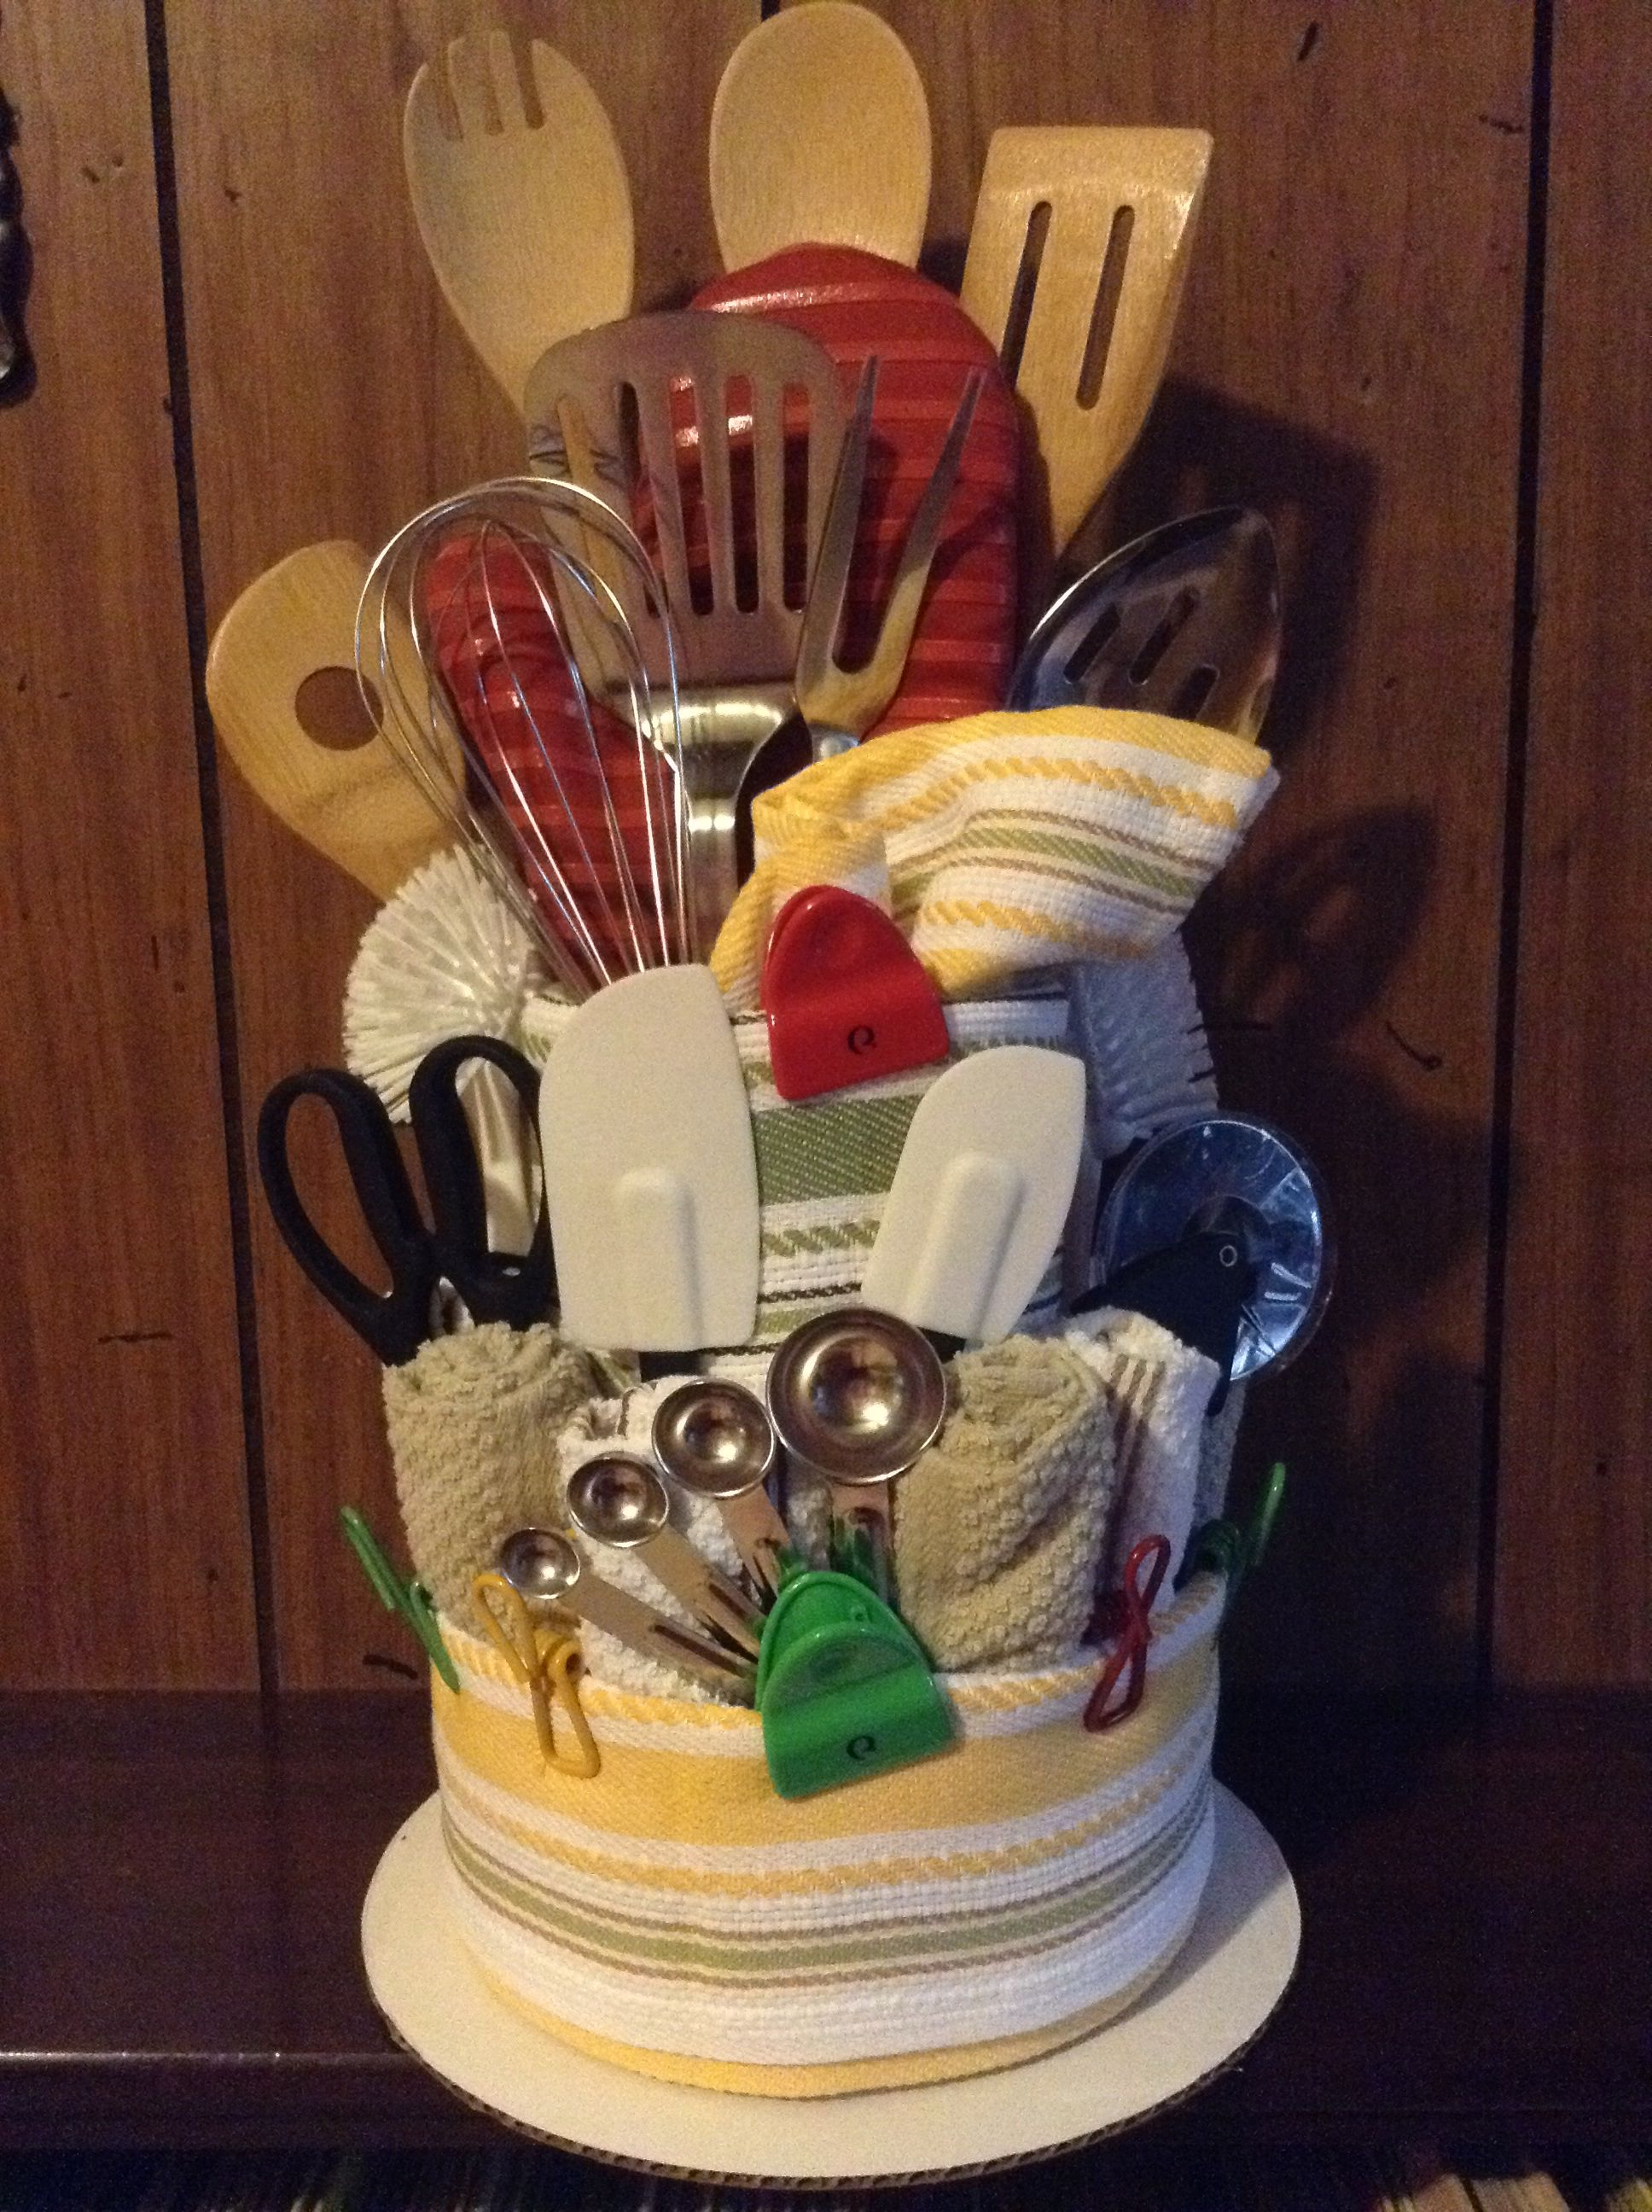 Kitchen Dish Towel Cake My Mom And I Made As A Wedding